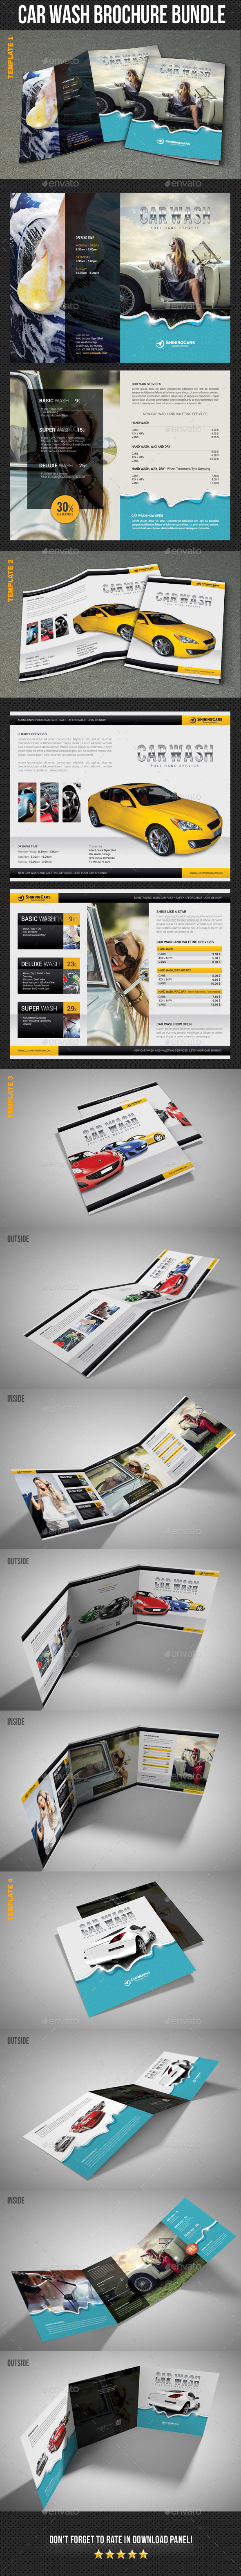 Car Wash Brochure Bundle - Corporate Brochures